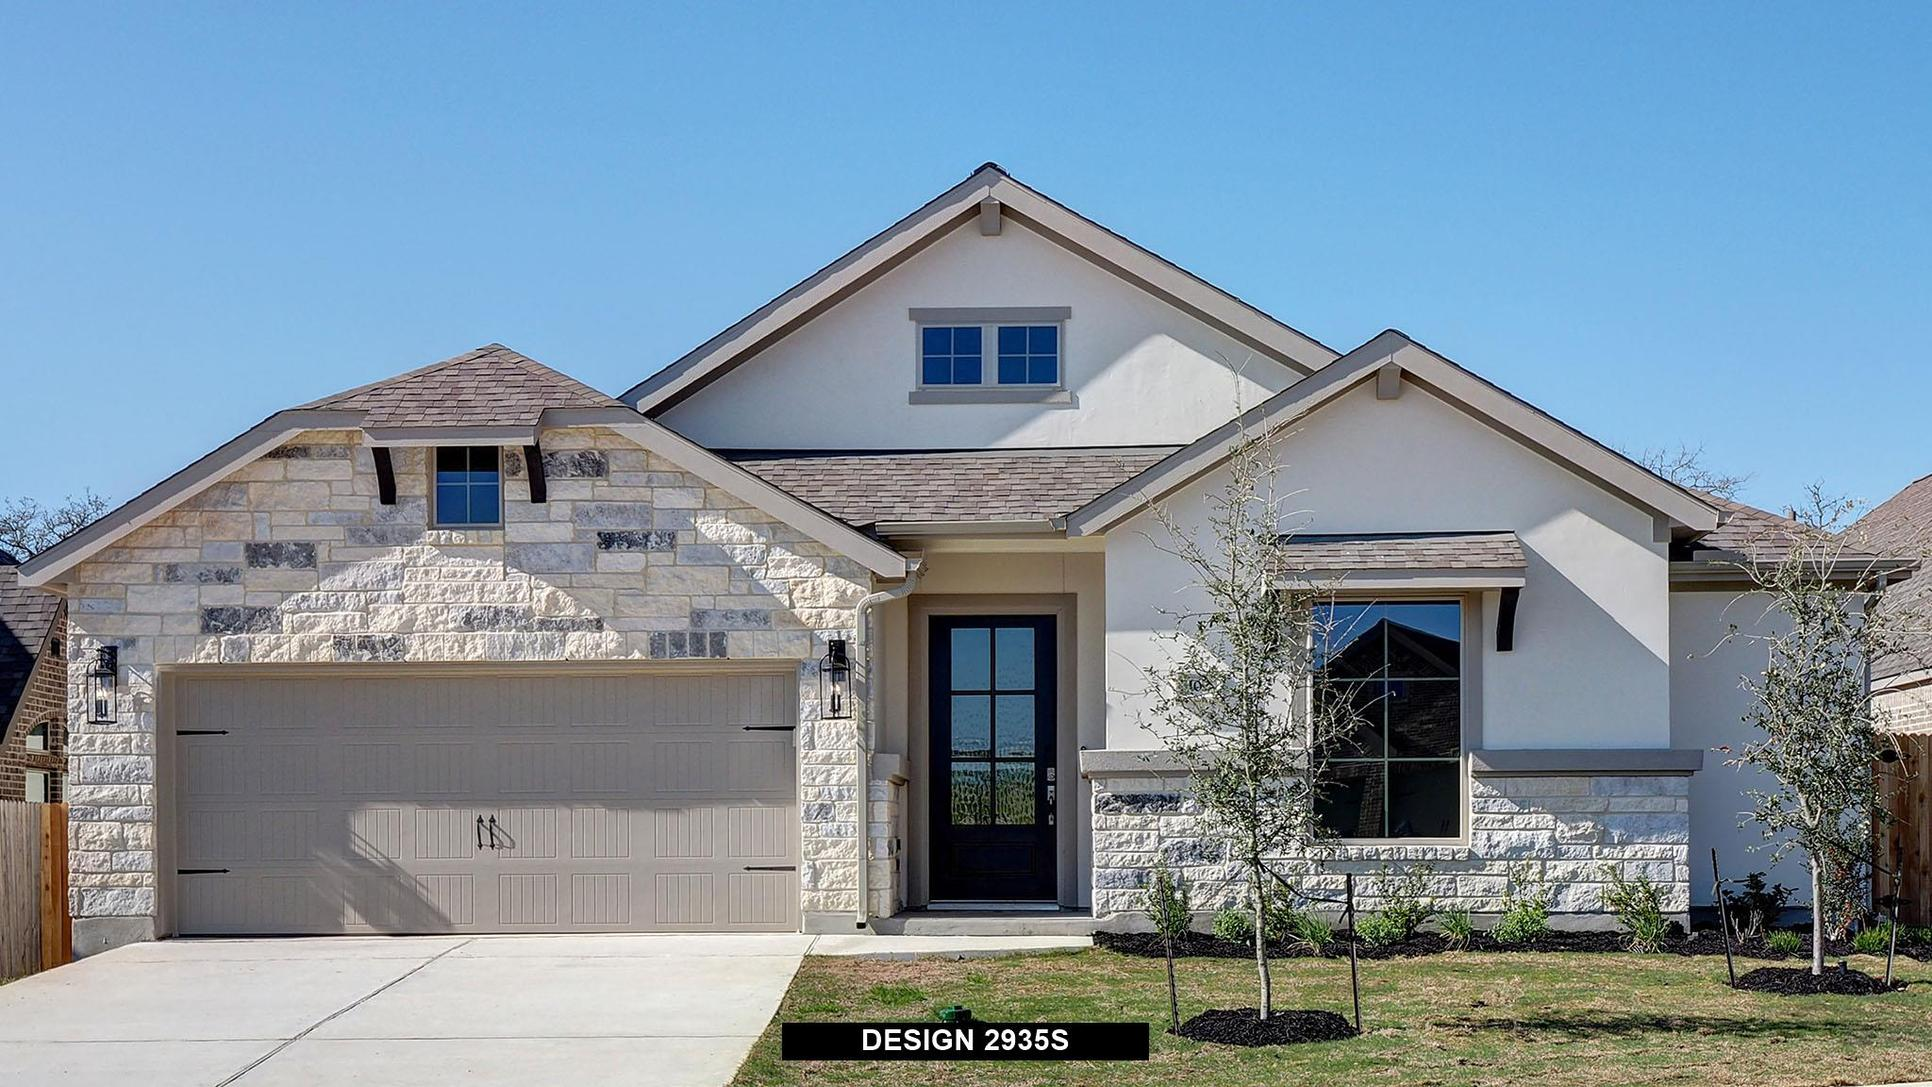 Plan 2935S:Representative photo.  Features and specifications may vary by community.